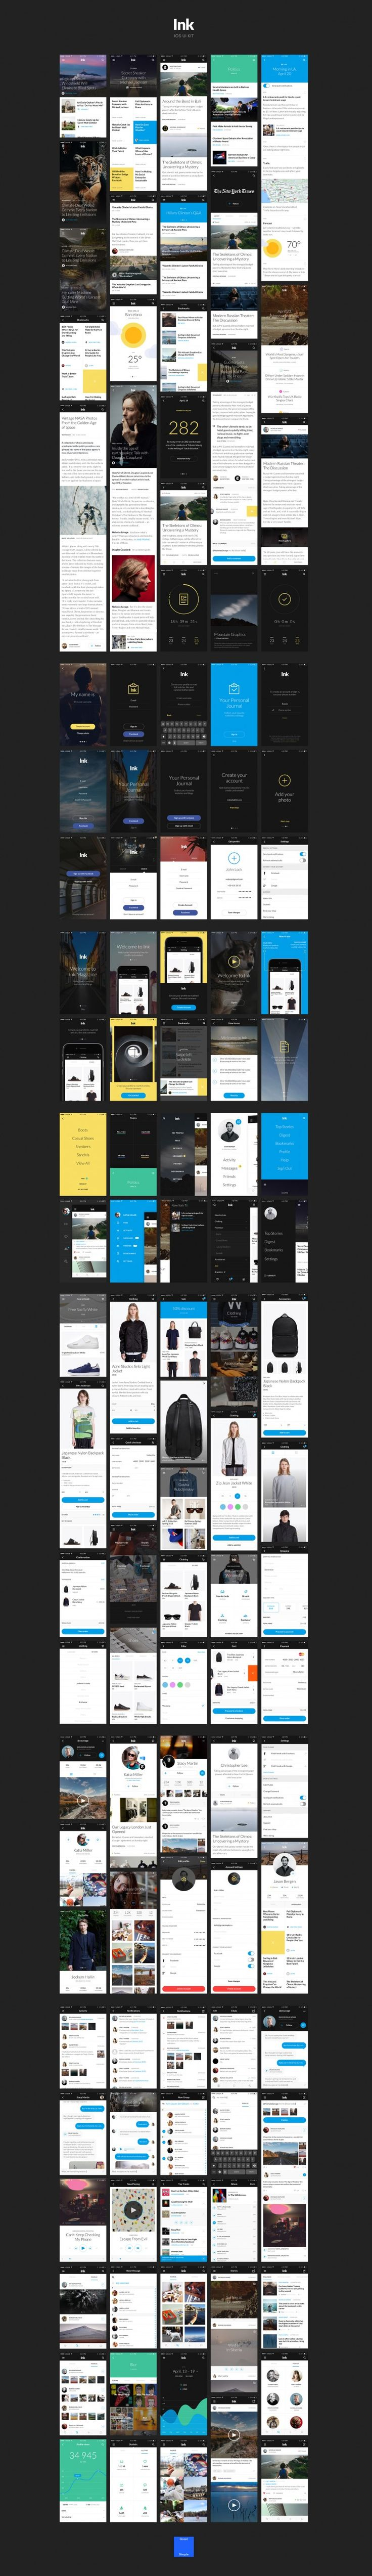 Ink UI Kit – 120  iOS screens